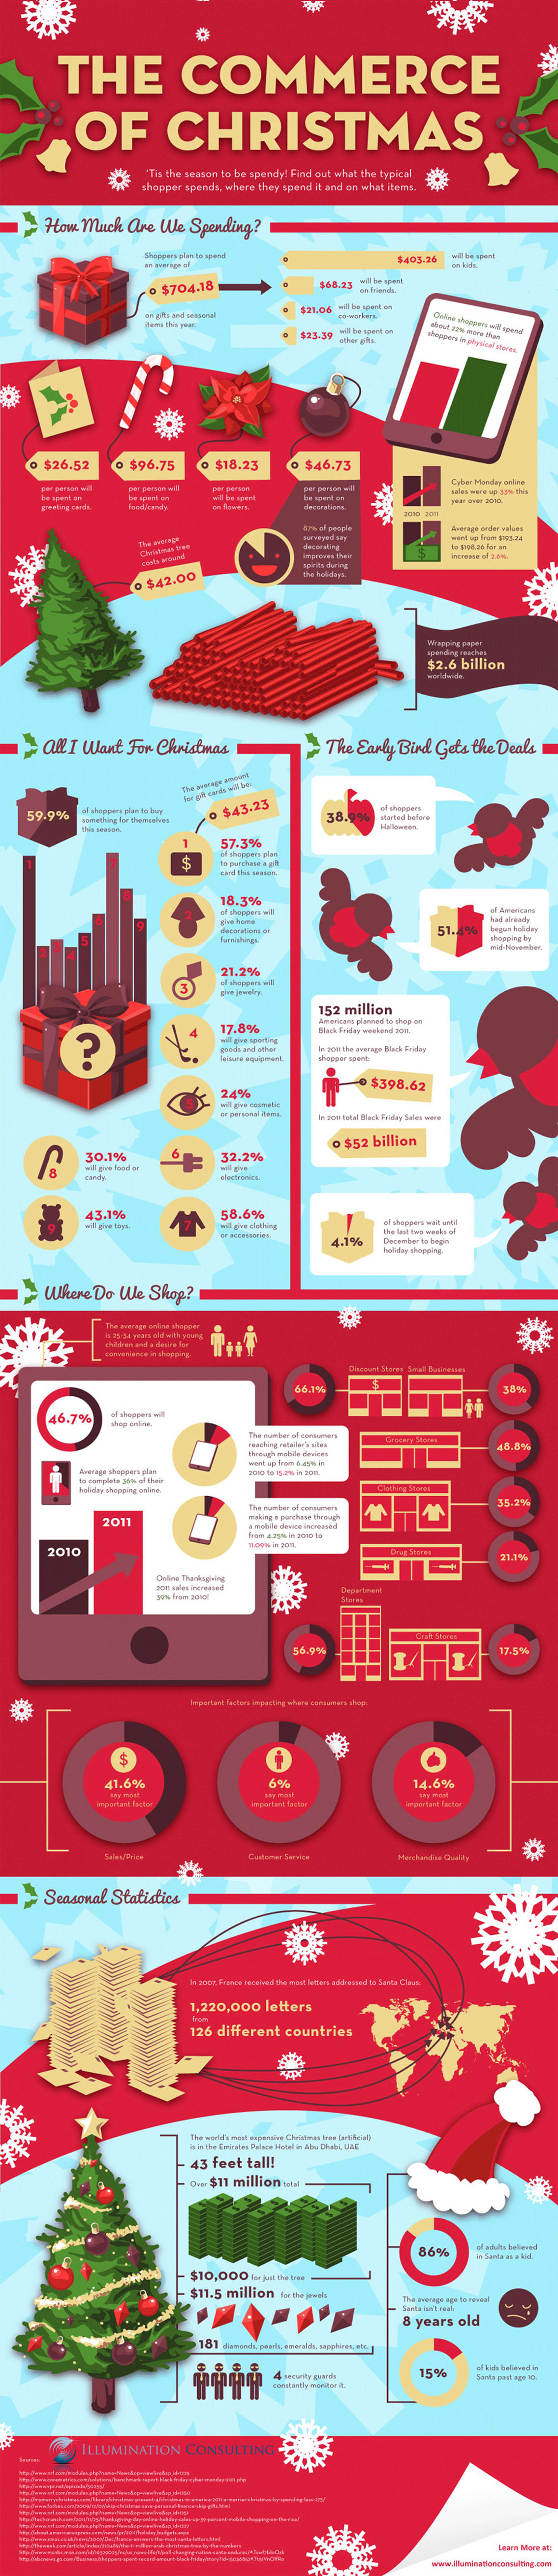 Business of Christmas Infographic